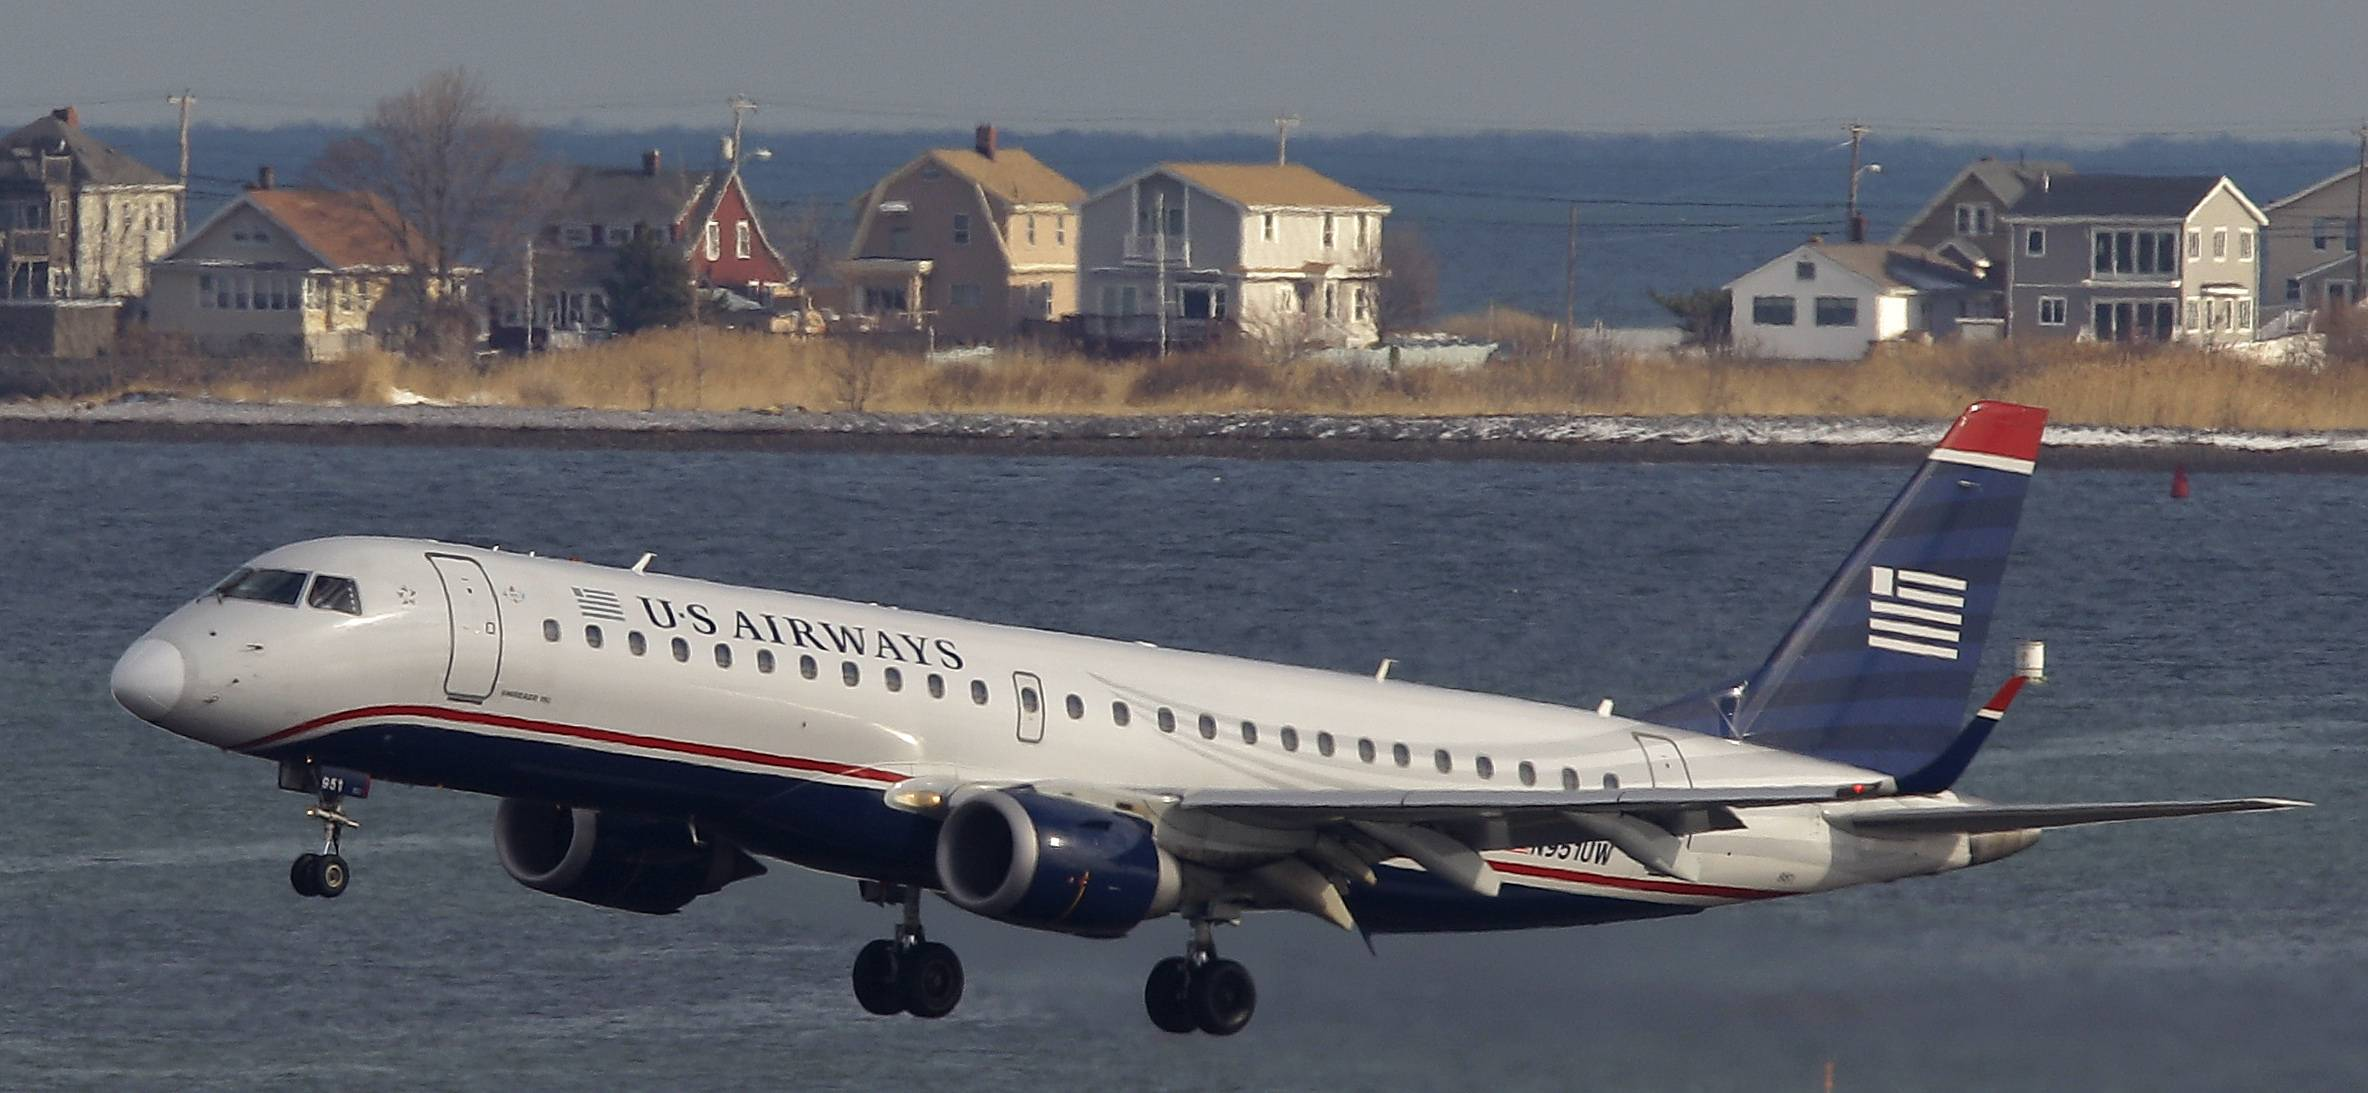 oligopoly essay of american airlines raise fares The American Way